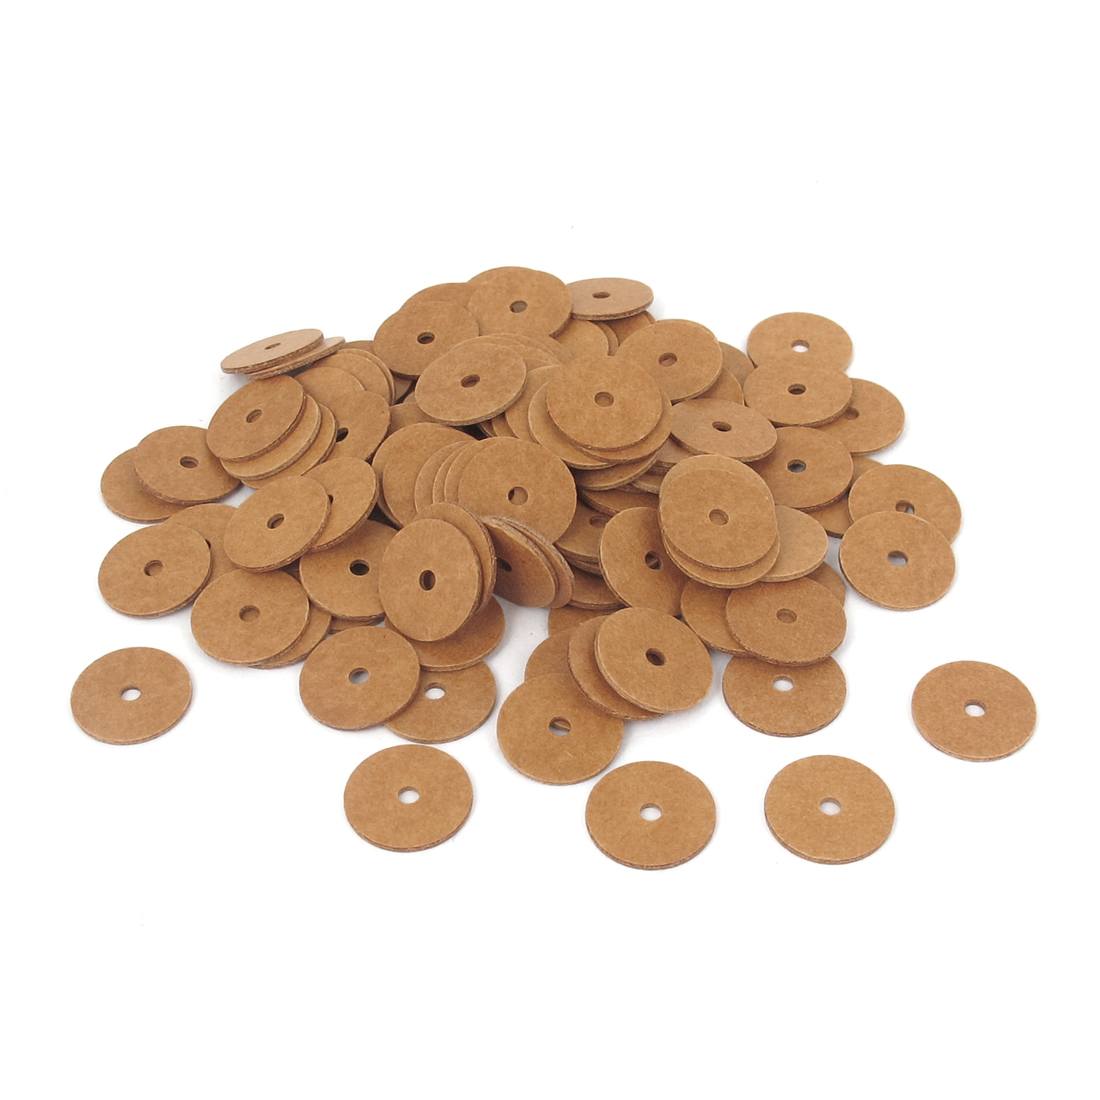 2mmx12mmx1mm Fiber Motherboard Insulating Washers Insulation Spacer Orange 100pcs